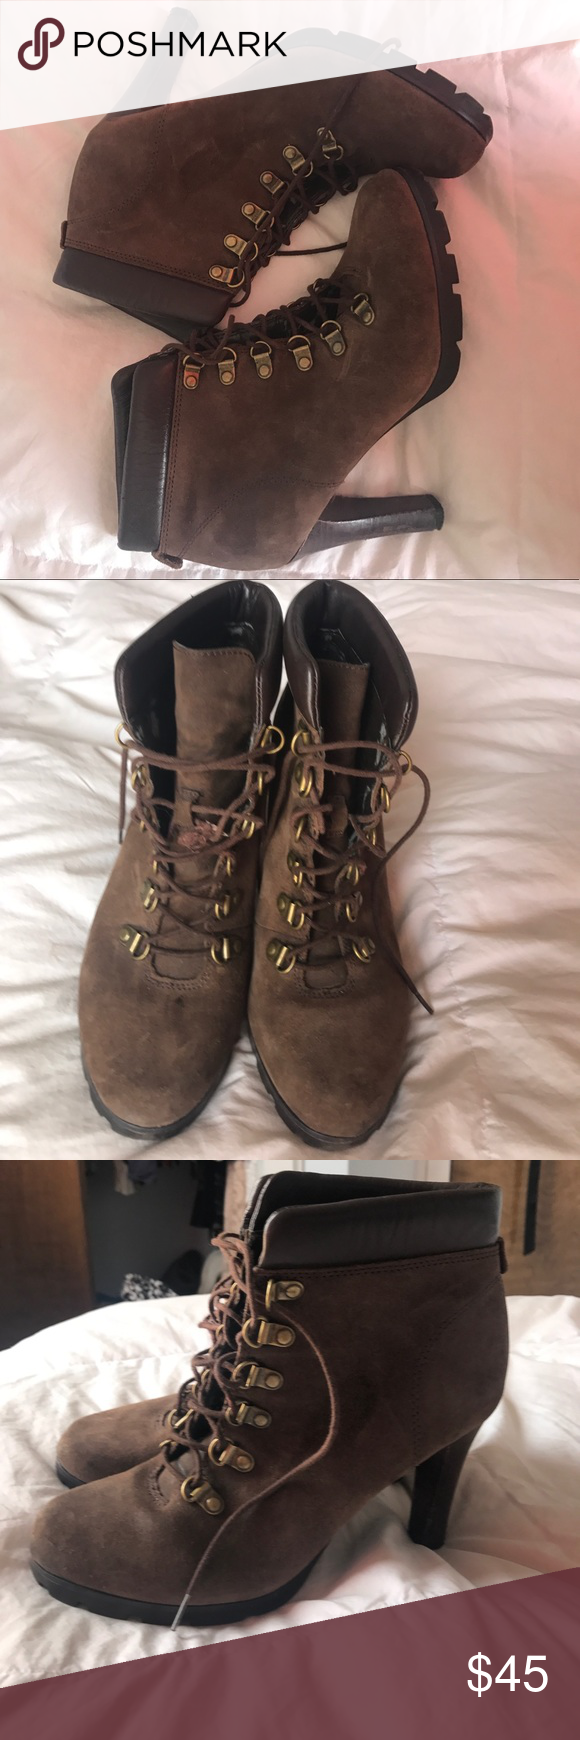 Vintage Ralph Lauren Brown Suede Lace Up Bootie Vintage Brown Suede Ralph Lauren lace up Bootie. Size 7. Heels are a little scuffed, one of the RL studs is missing on right bootie and one of the laces is broken. PreLoved with lots of wear left Ralph Lauren Shoes Ankle Boots & Booties